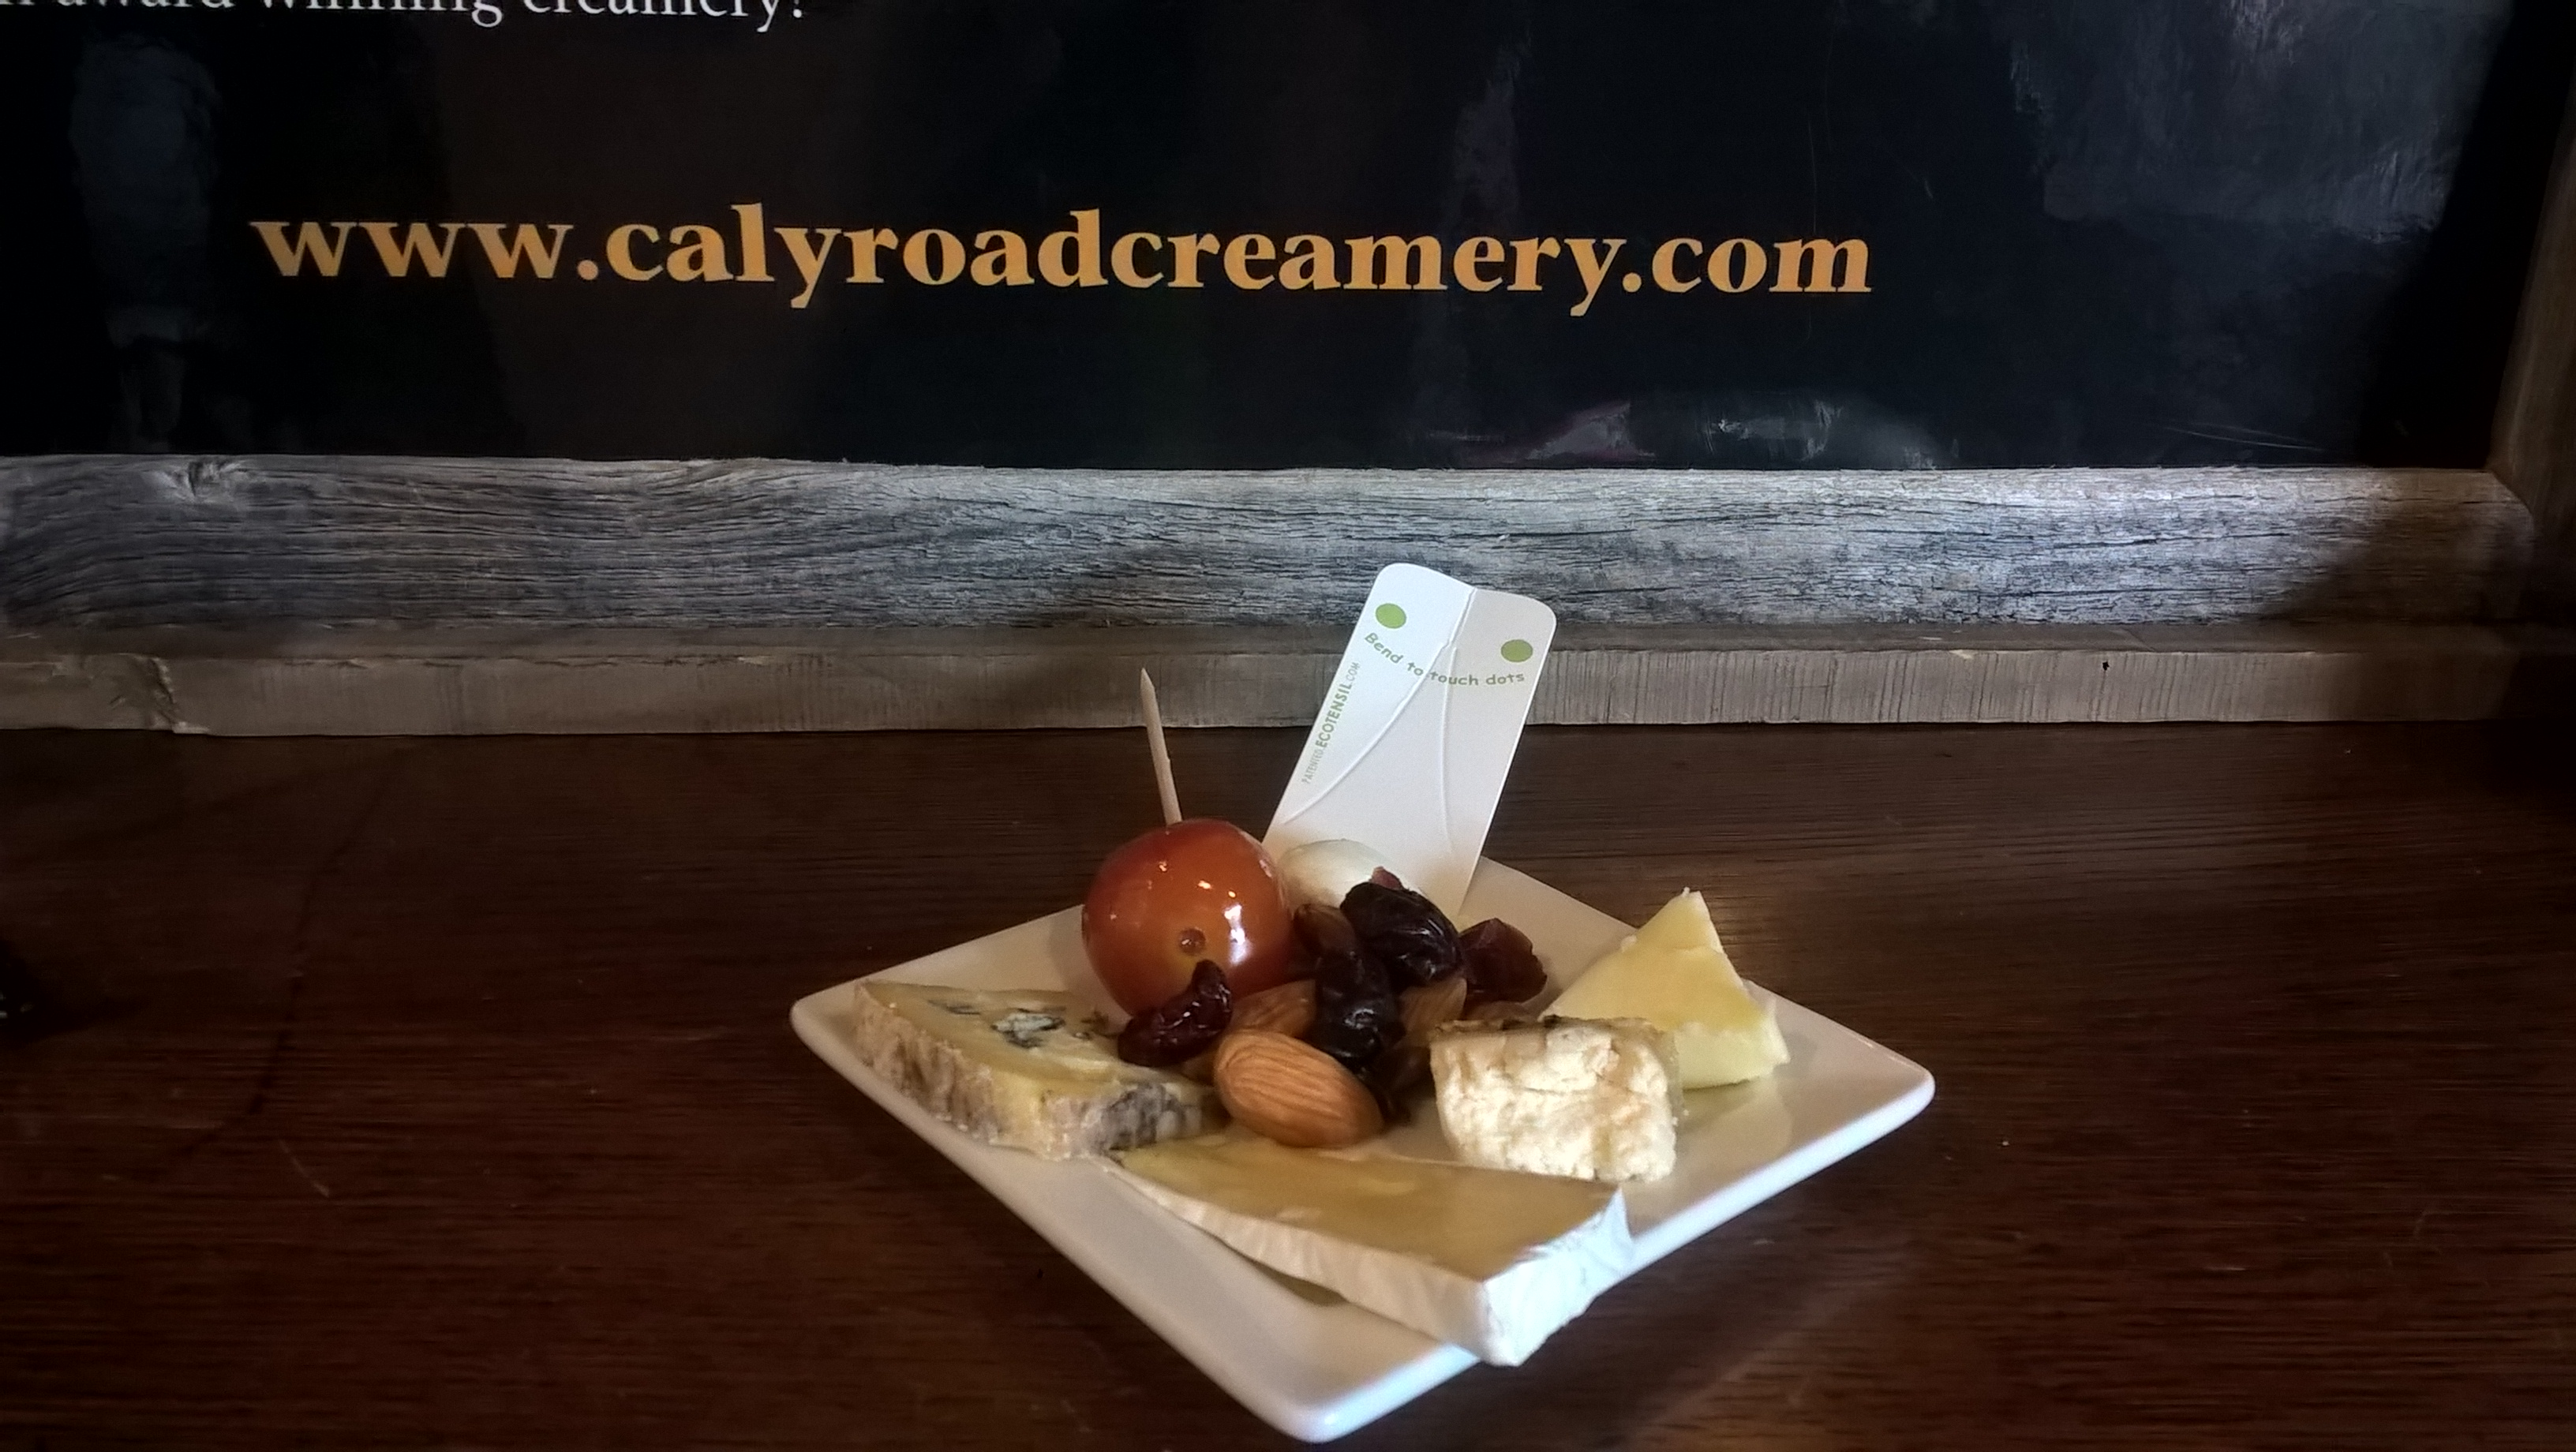 Cheese sampler at CalyRoad Creamery